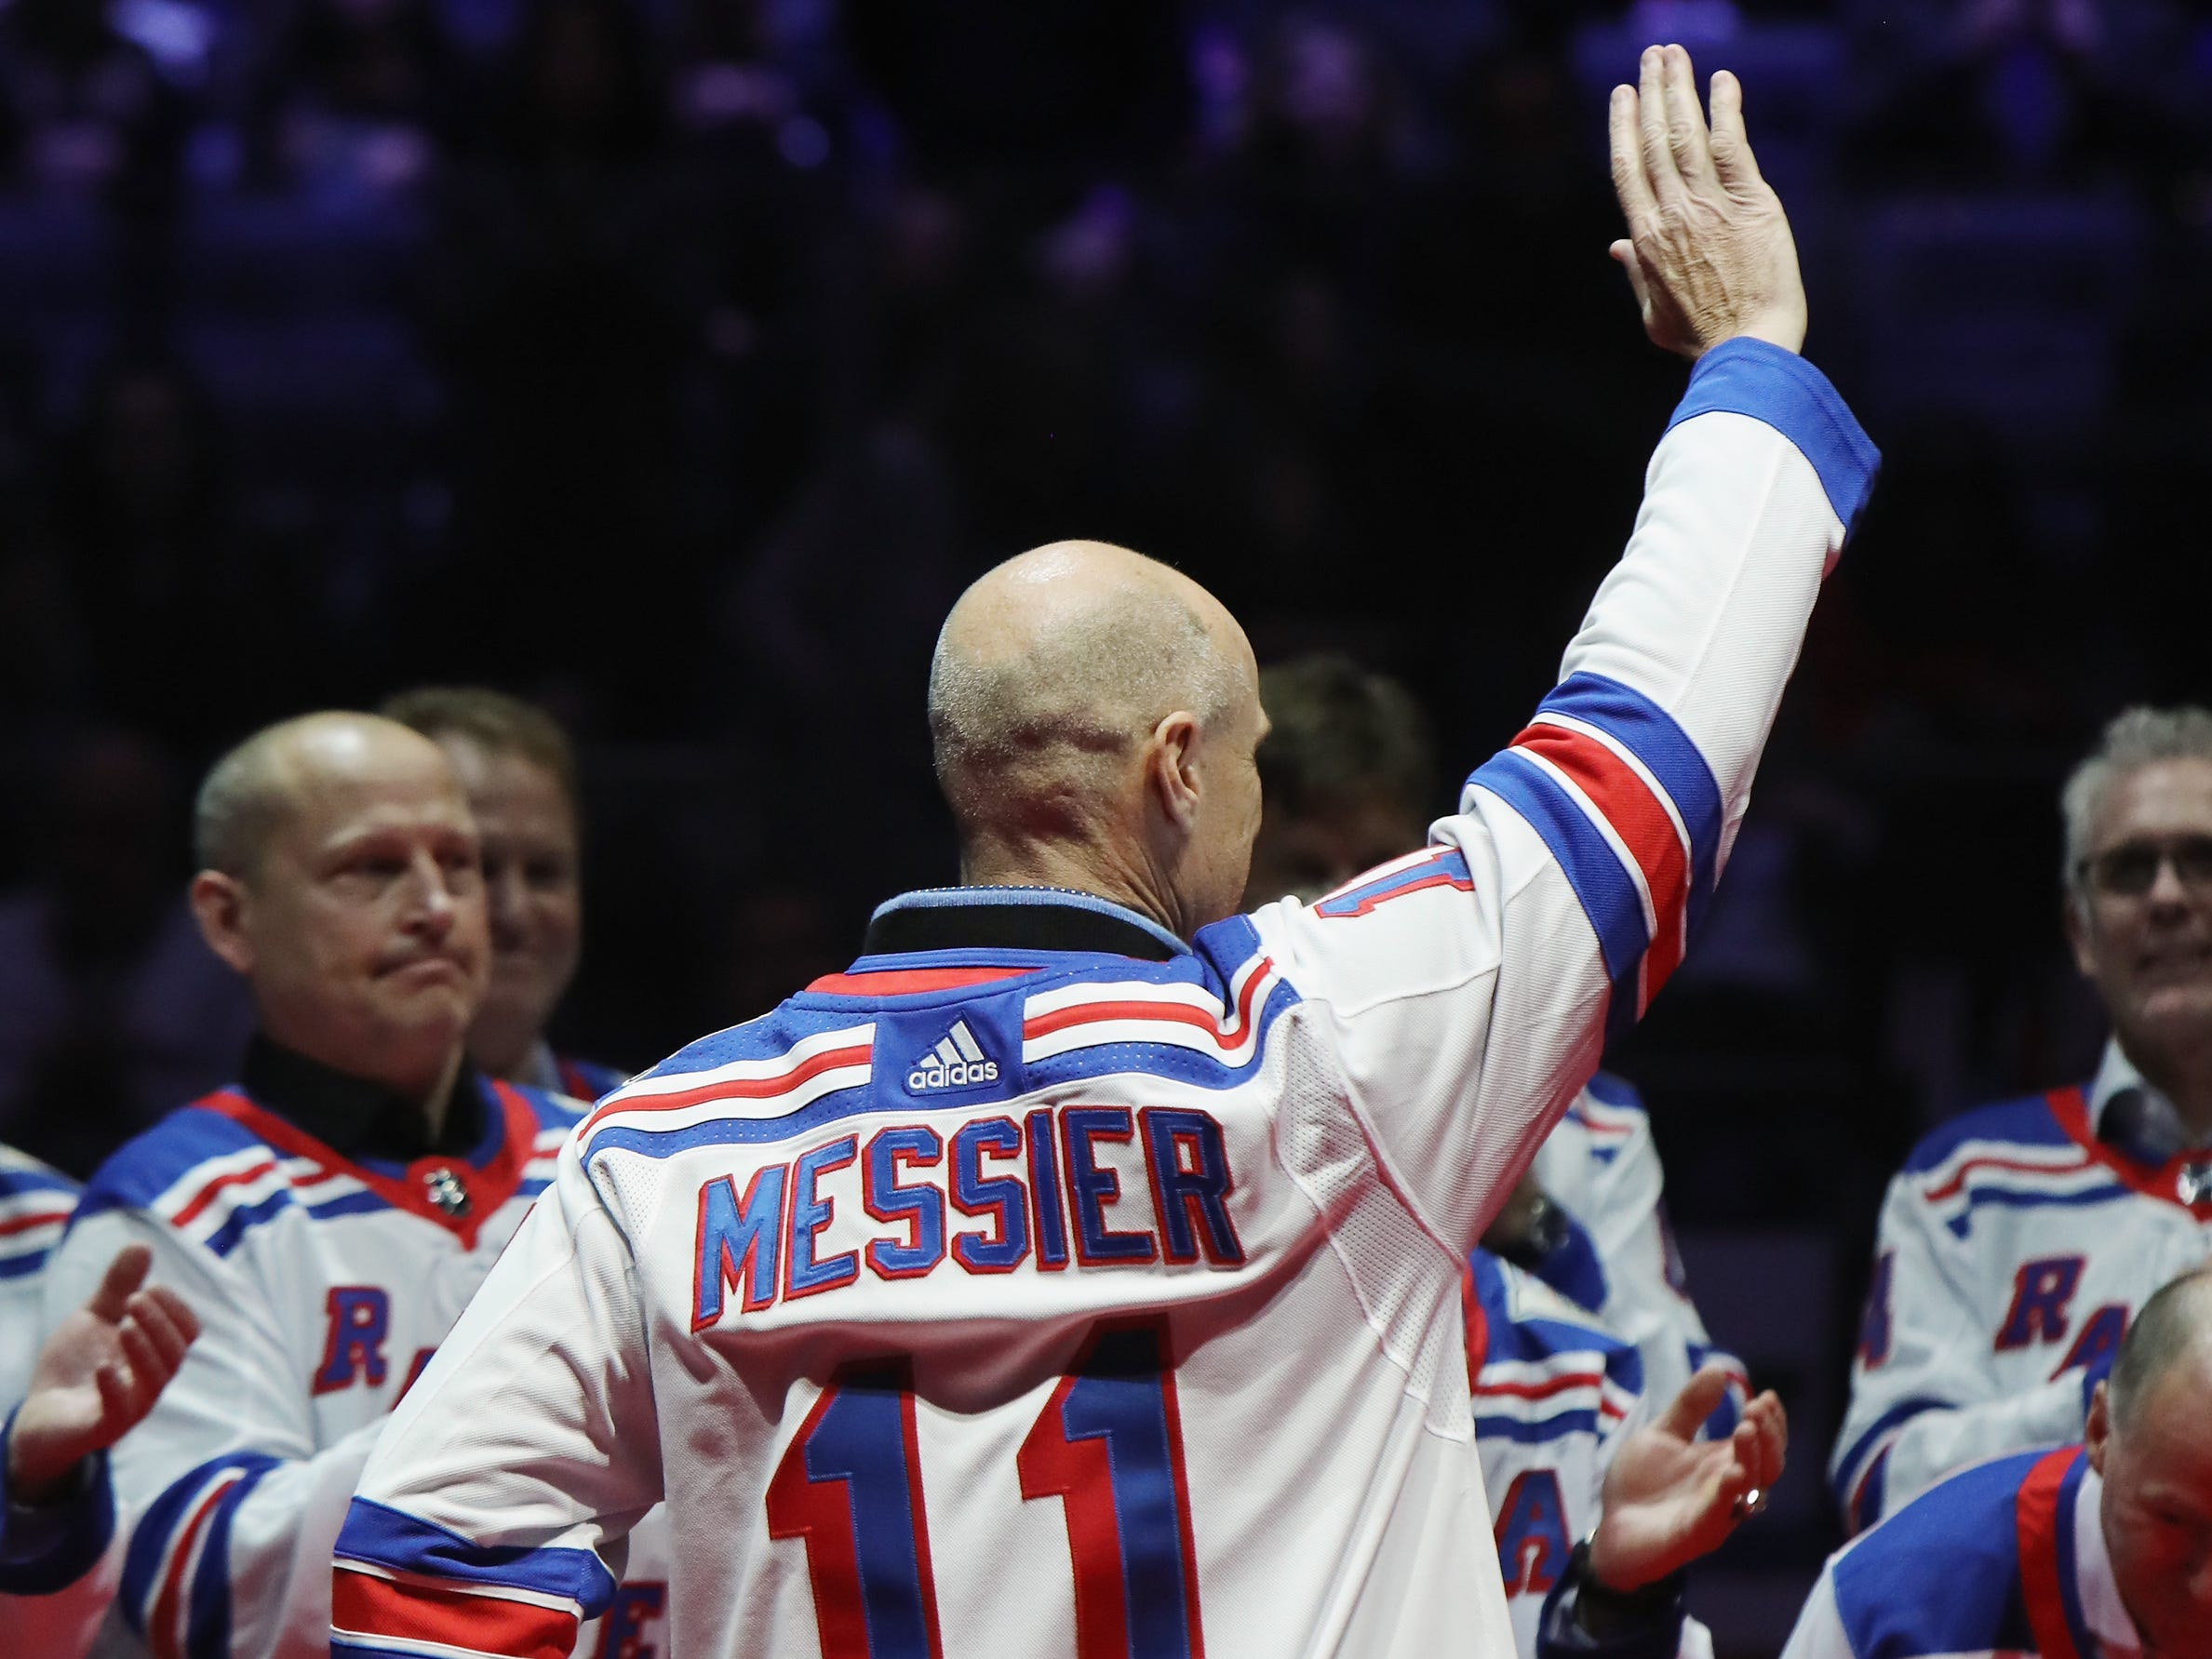 NEW YORK, NEW YORK - FEBRUARY 08: Mark Messier of the New York Rangers Stanley Cup winning team of 1994 attend a ceremony prior to the Rangers game against the Carolina Hurricanes at Madison Square Garden on February 08, 2019 in New York City. The Rangers were celebrating the 25th anniversary of their Stanley Cup win in 1994.